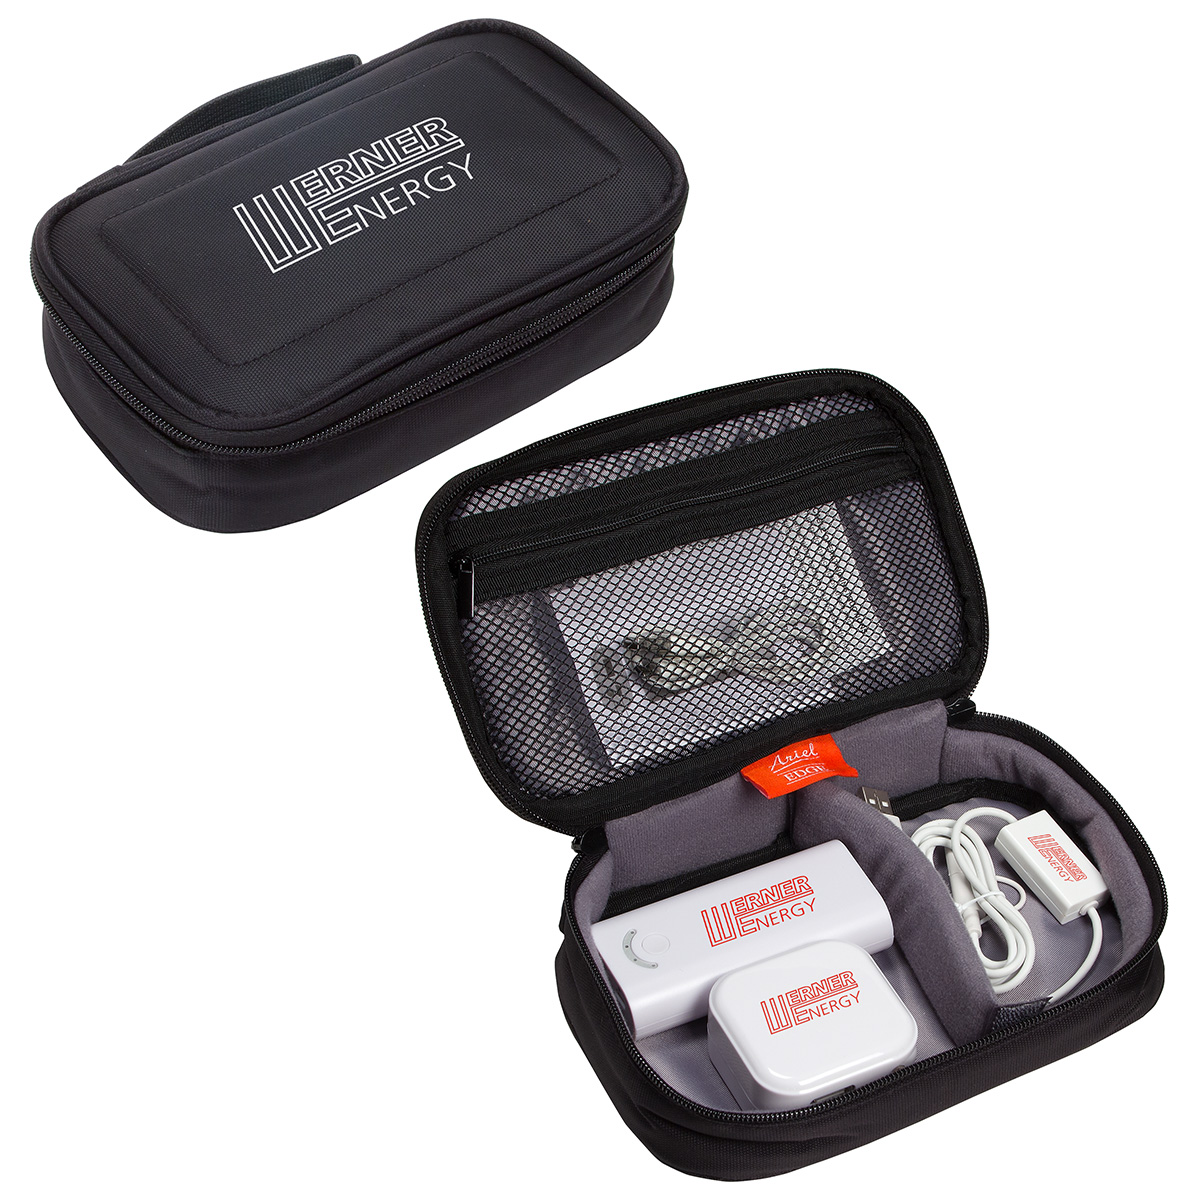 ChargerLeash Road Warrior Kit, ETK-CR16, 1 Colour Imprint